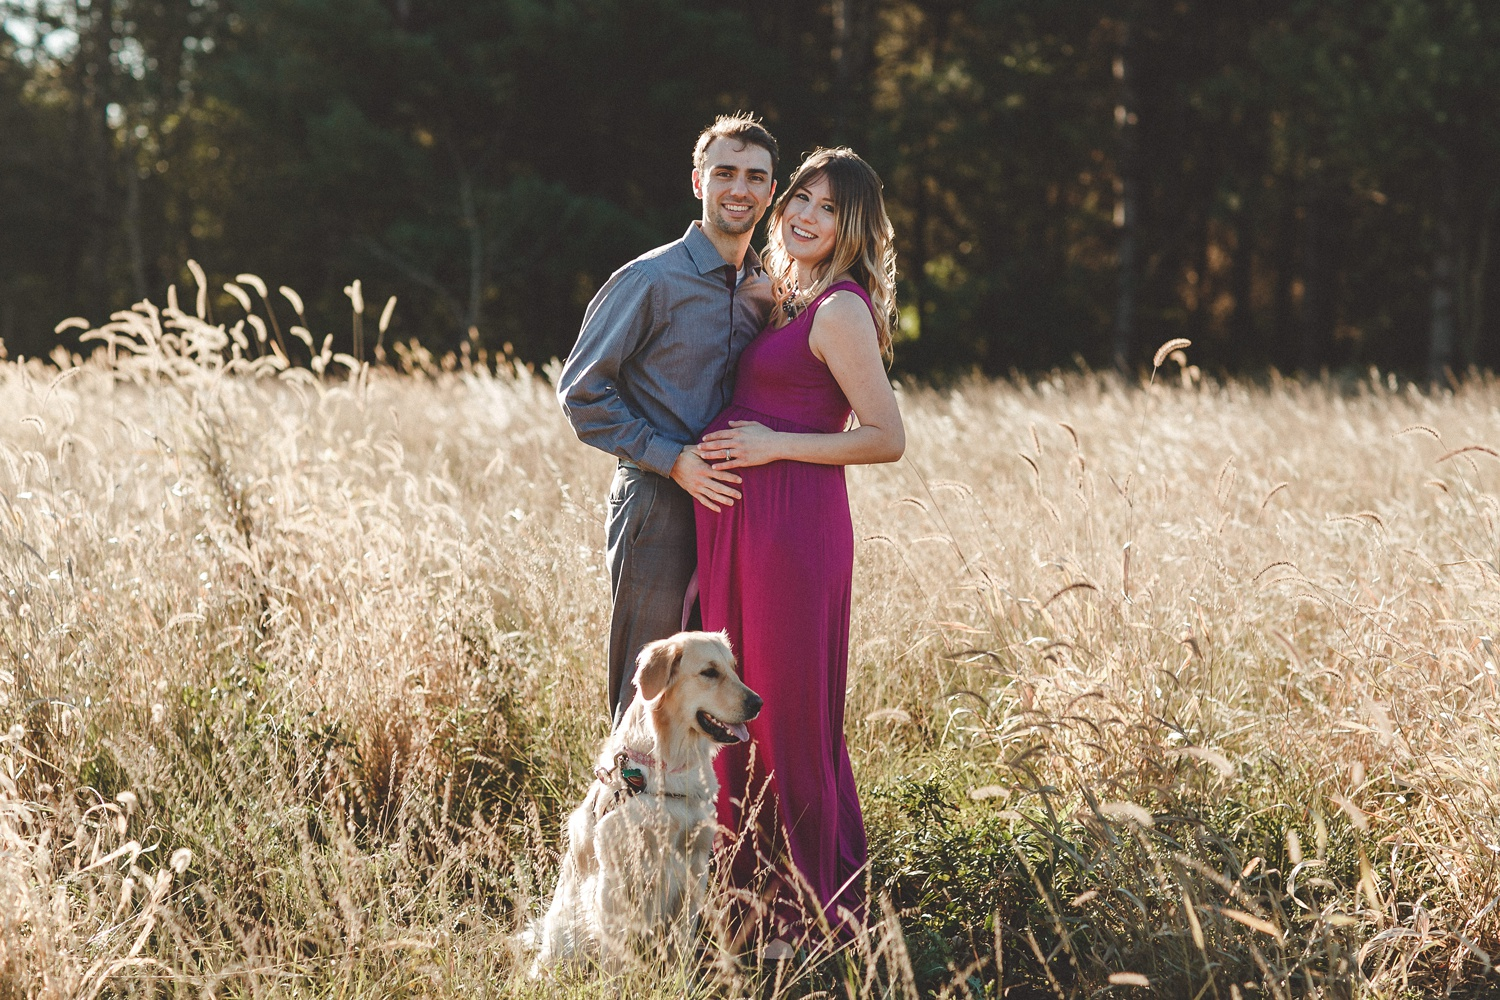 dekalb_IL_maternity_portrait_photographer_0016.jpg